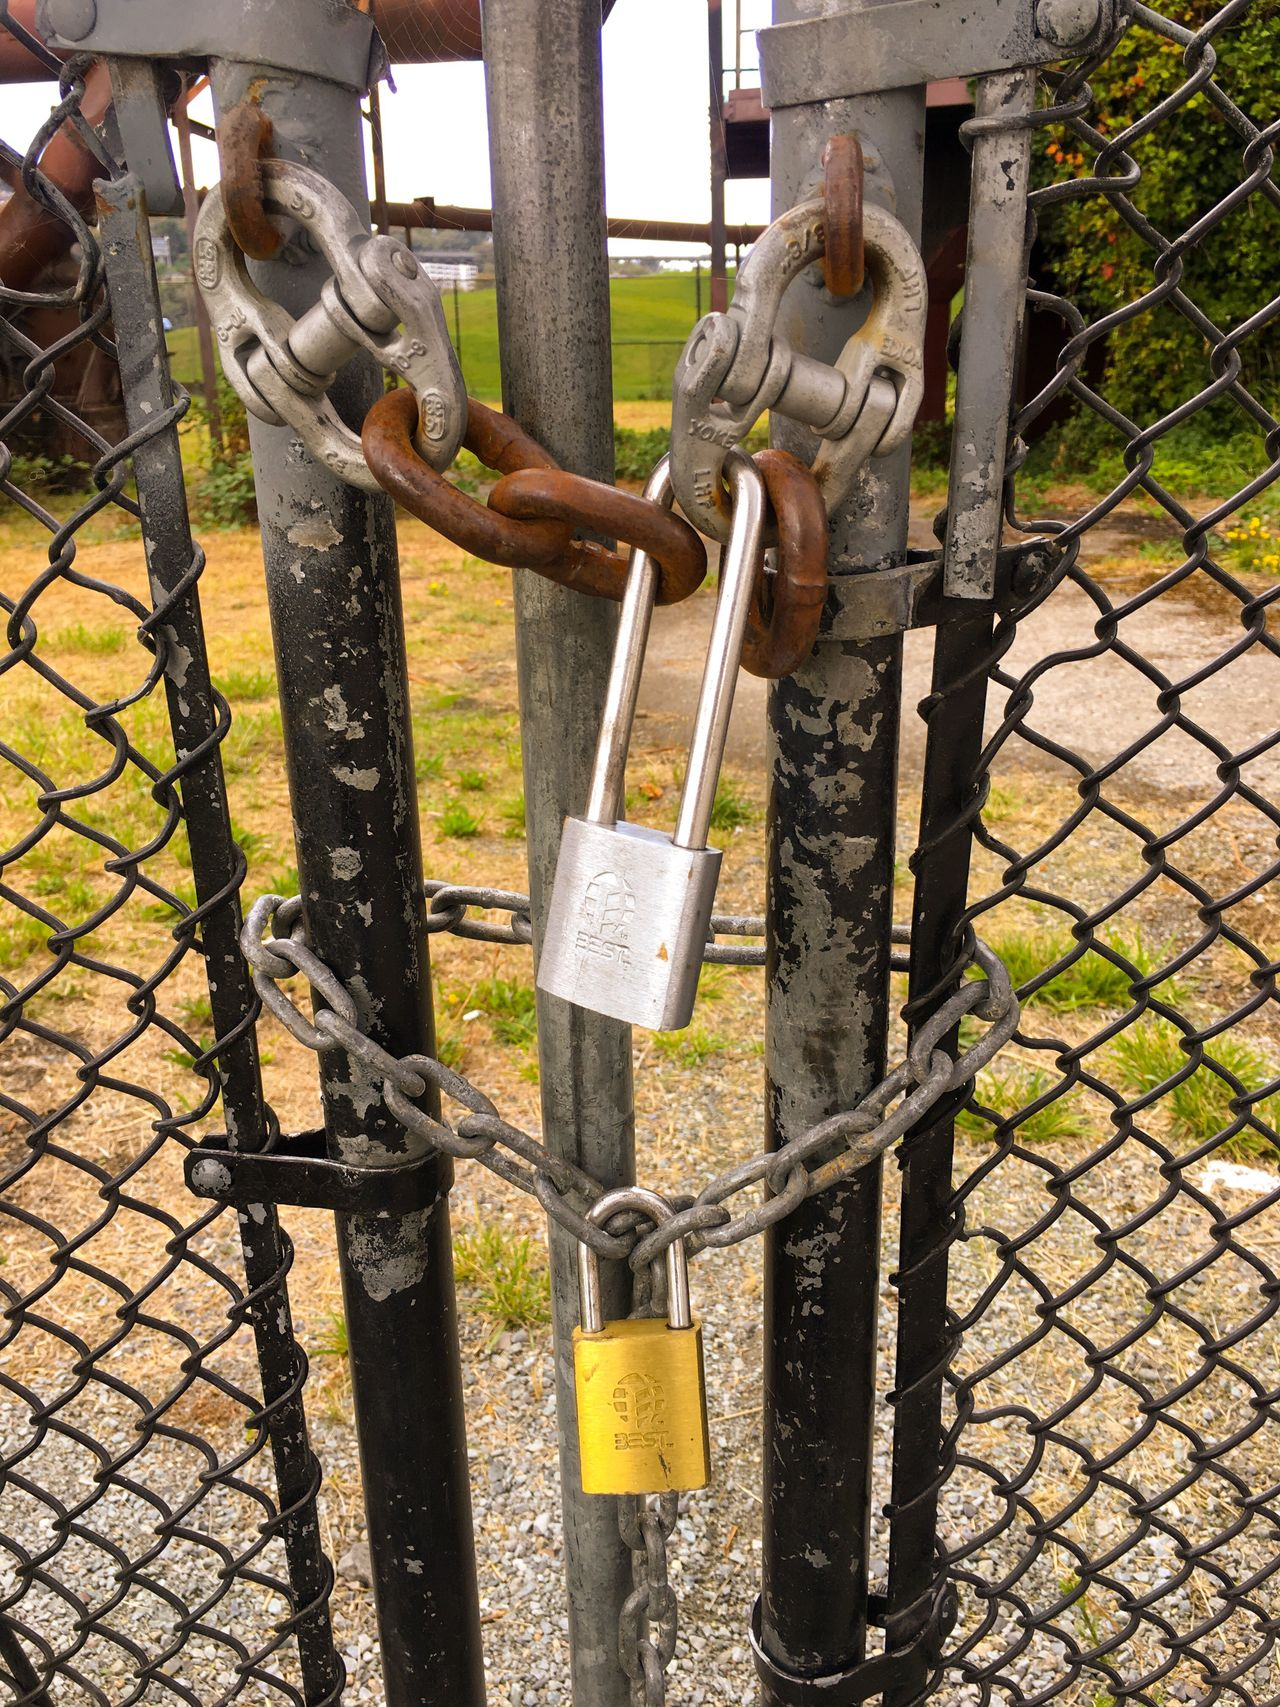 Gate Padlock Chain Locked Gasworks Industrial Area Refinery